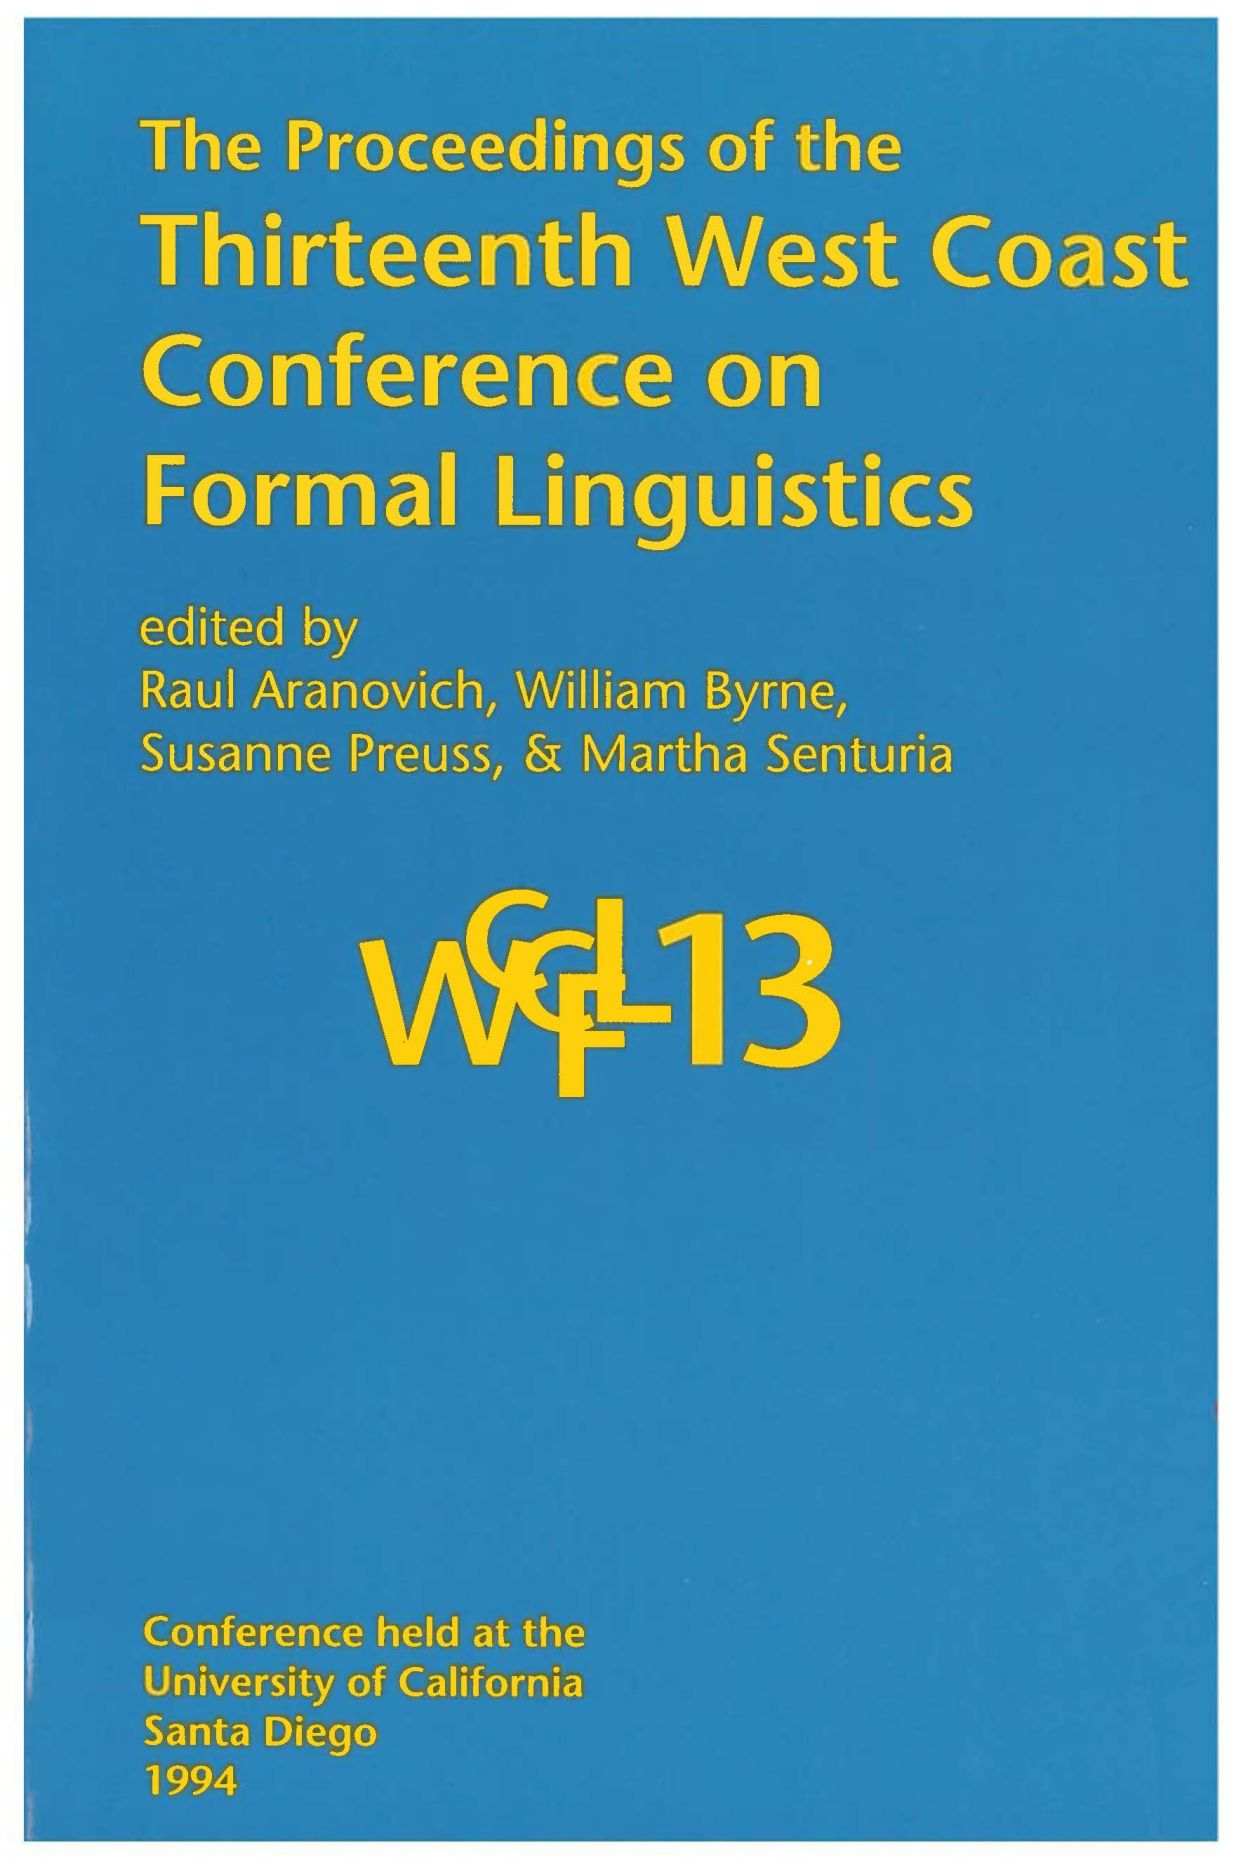 The Proceedings of the Thirteenth West Coast Conference on Formal Linguistics